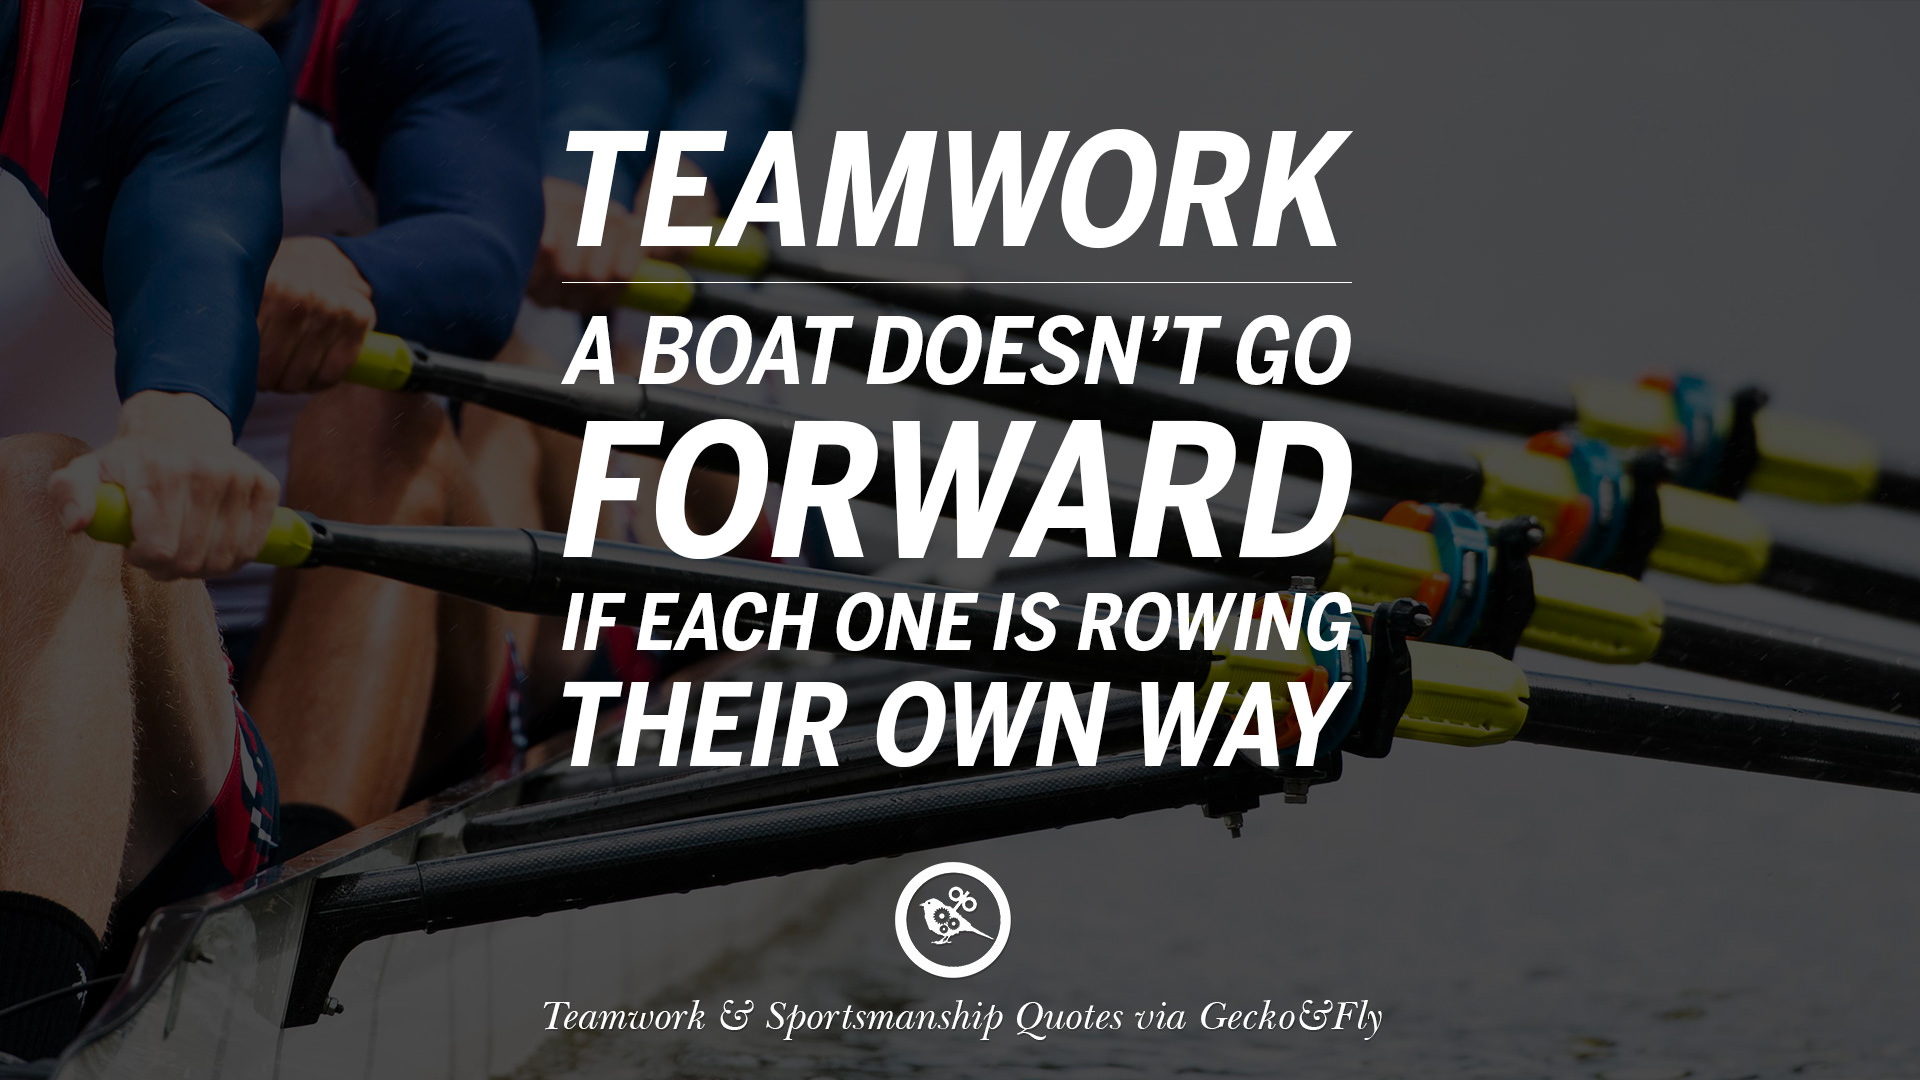 Inspirational Quotes About Teamwork 50 Inspirational Quotes About Teamwork And Sportsmanship